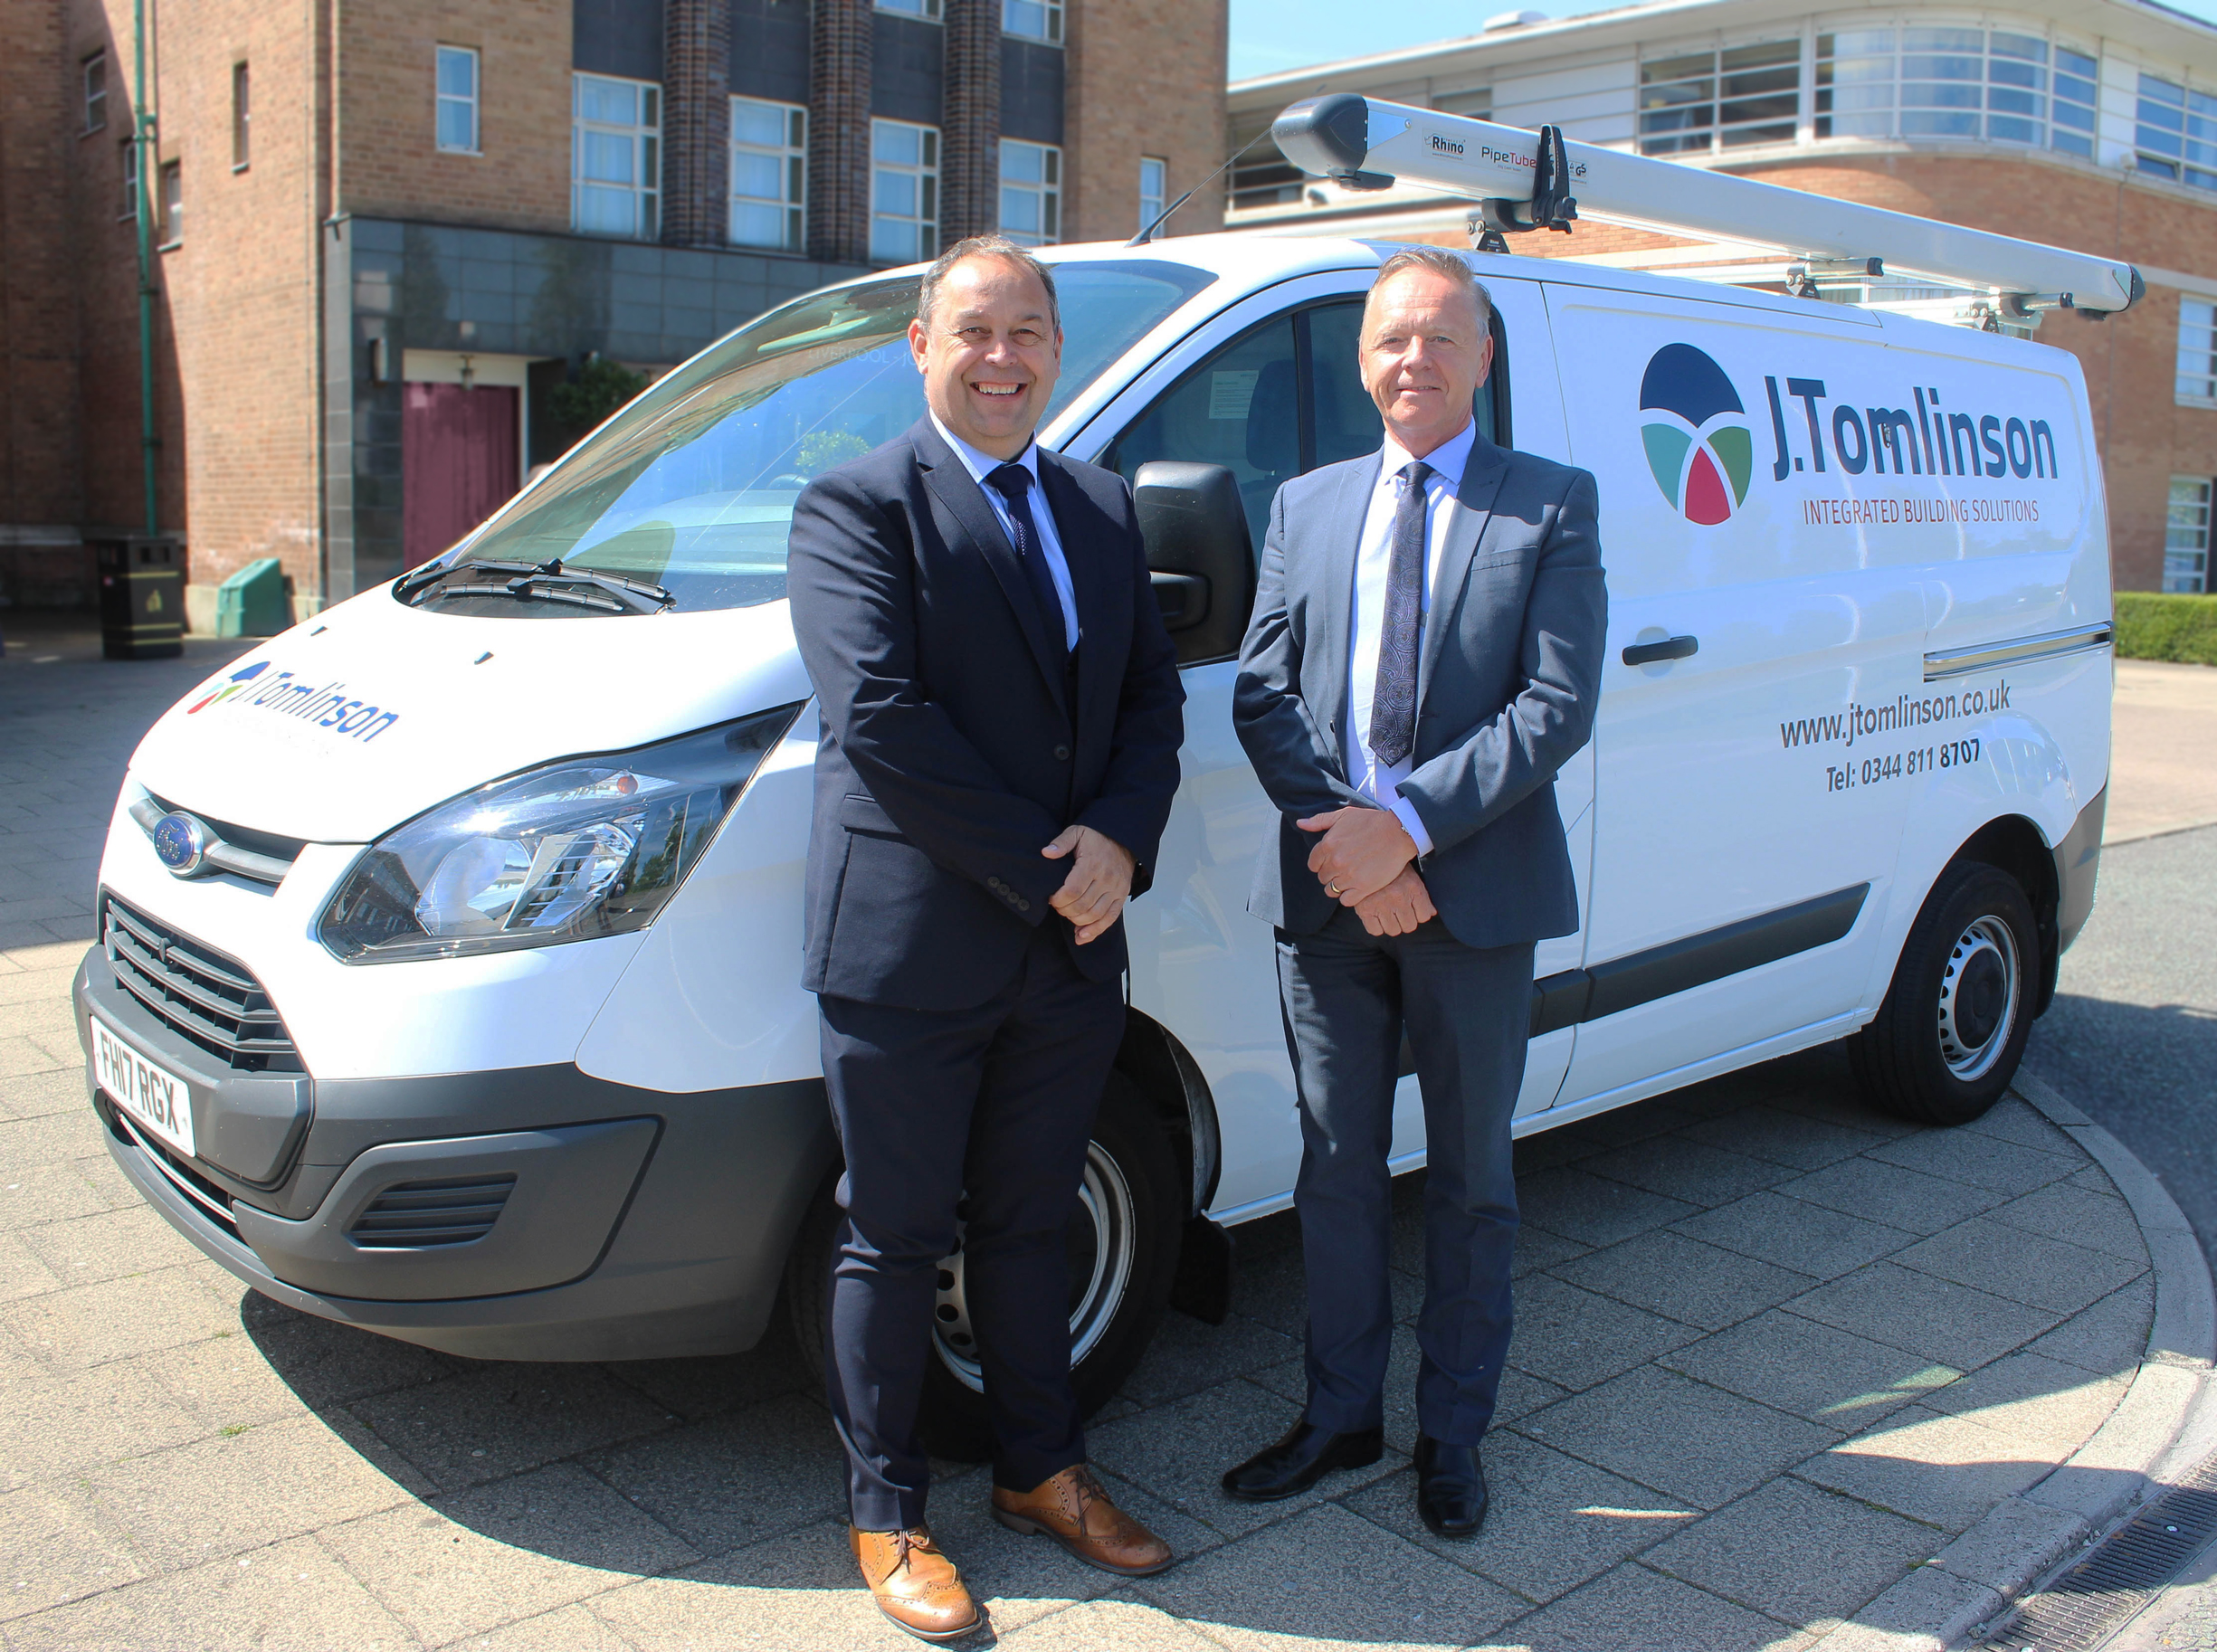 J Tomlinson opens two new offices after partnering with Places for People to deliver major works across the UK